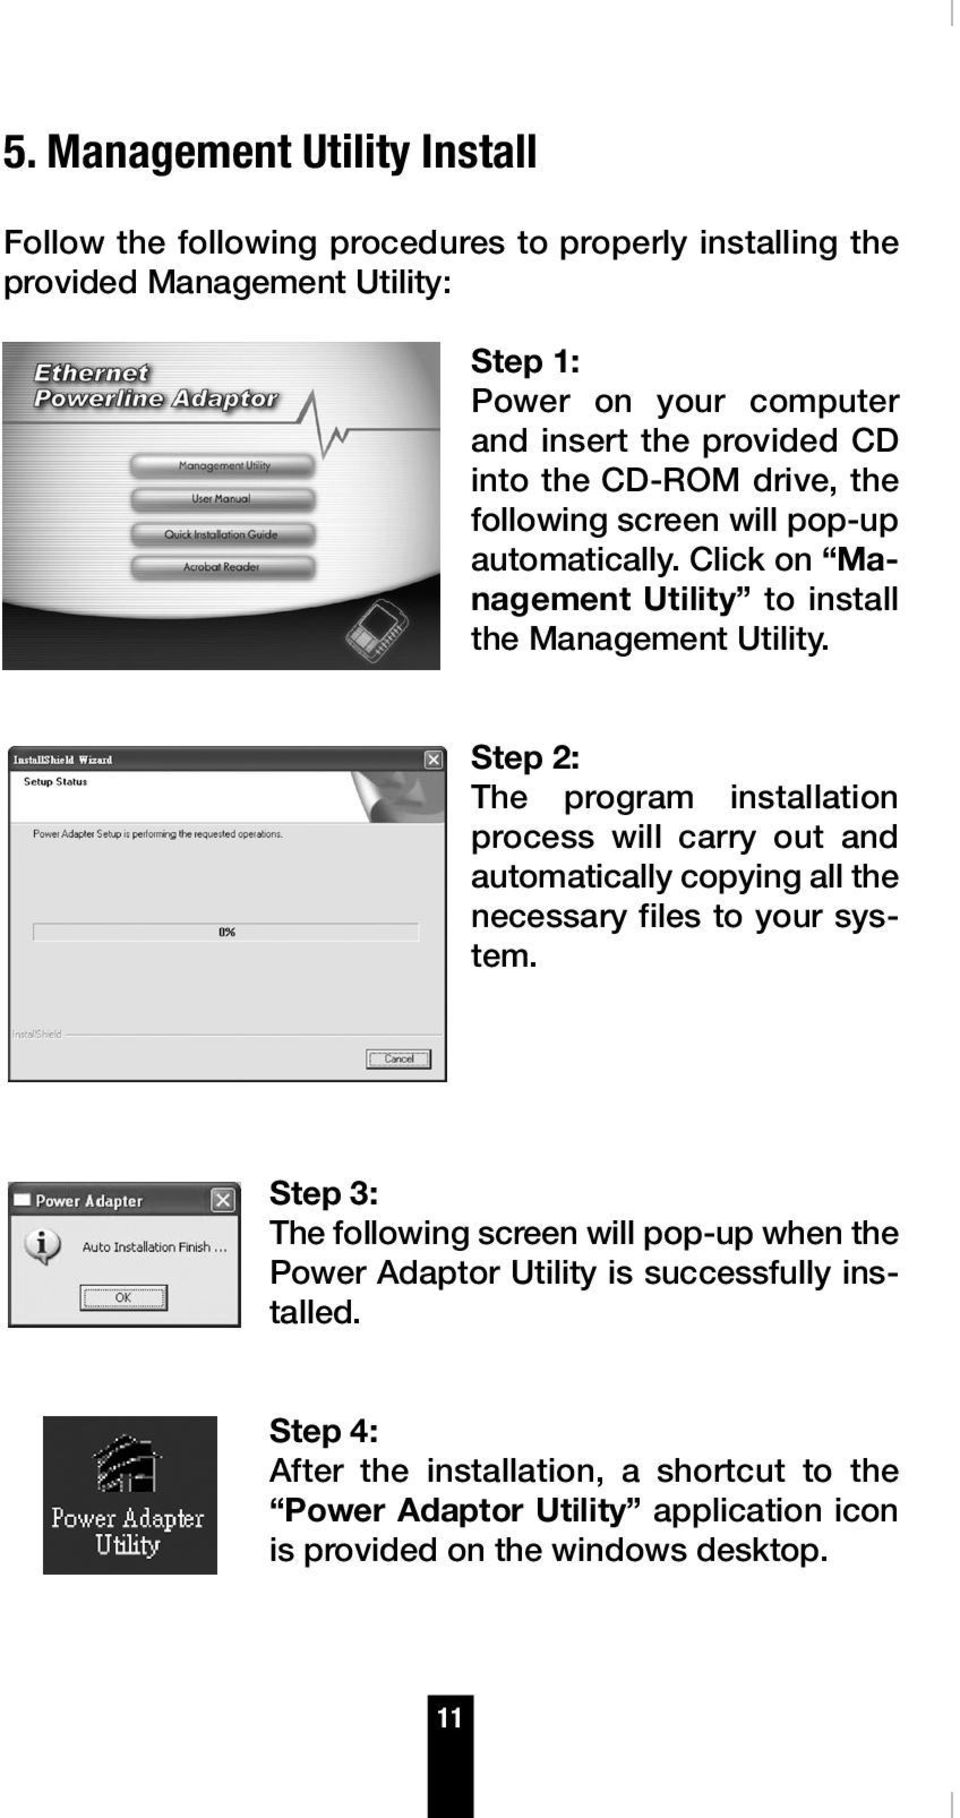 Step 2: The program installation process will carry out and automatically copying all the necessary files to your system.